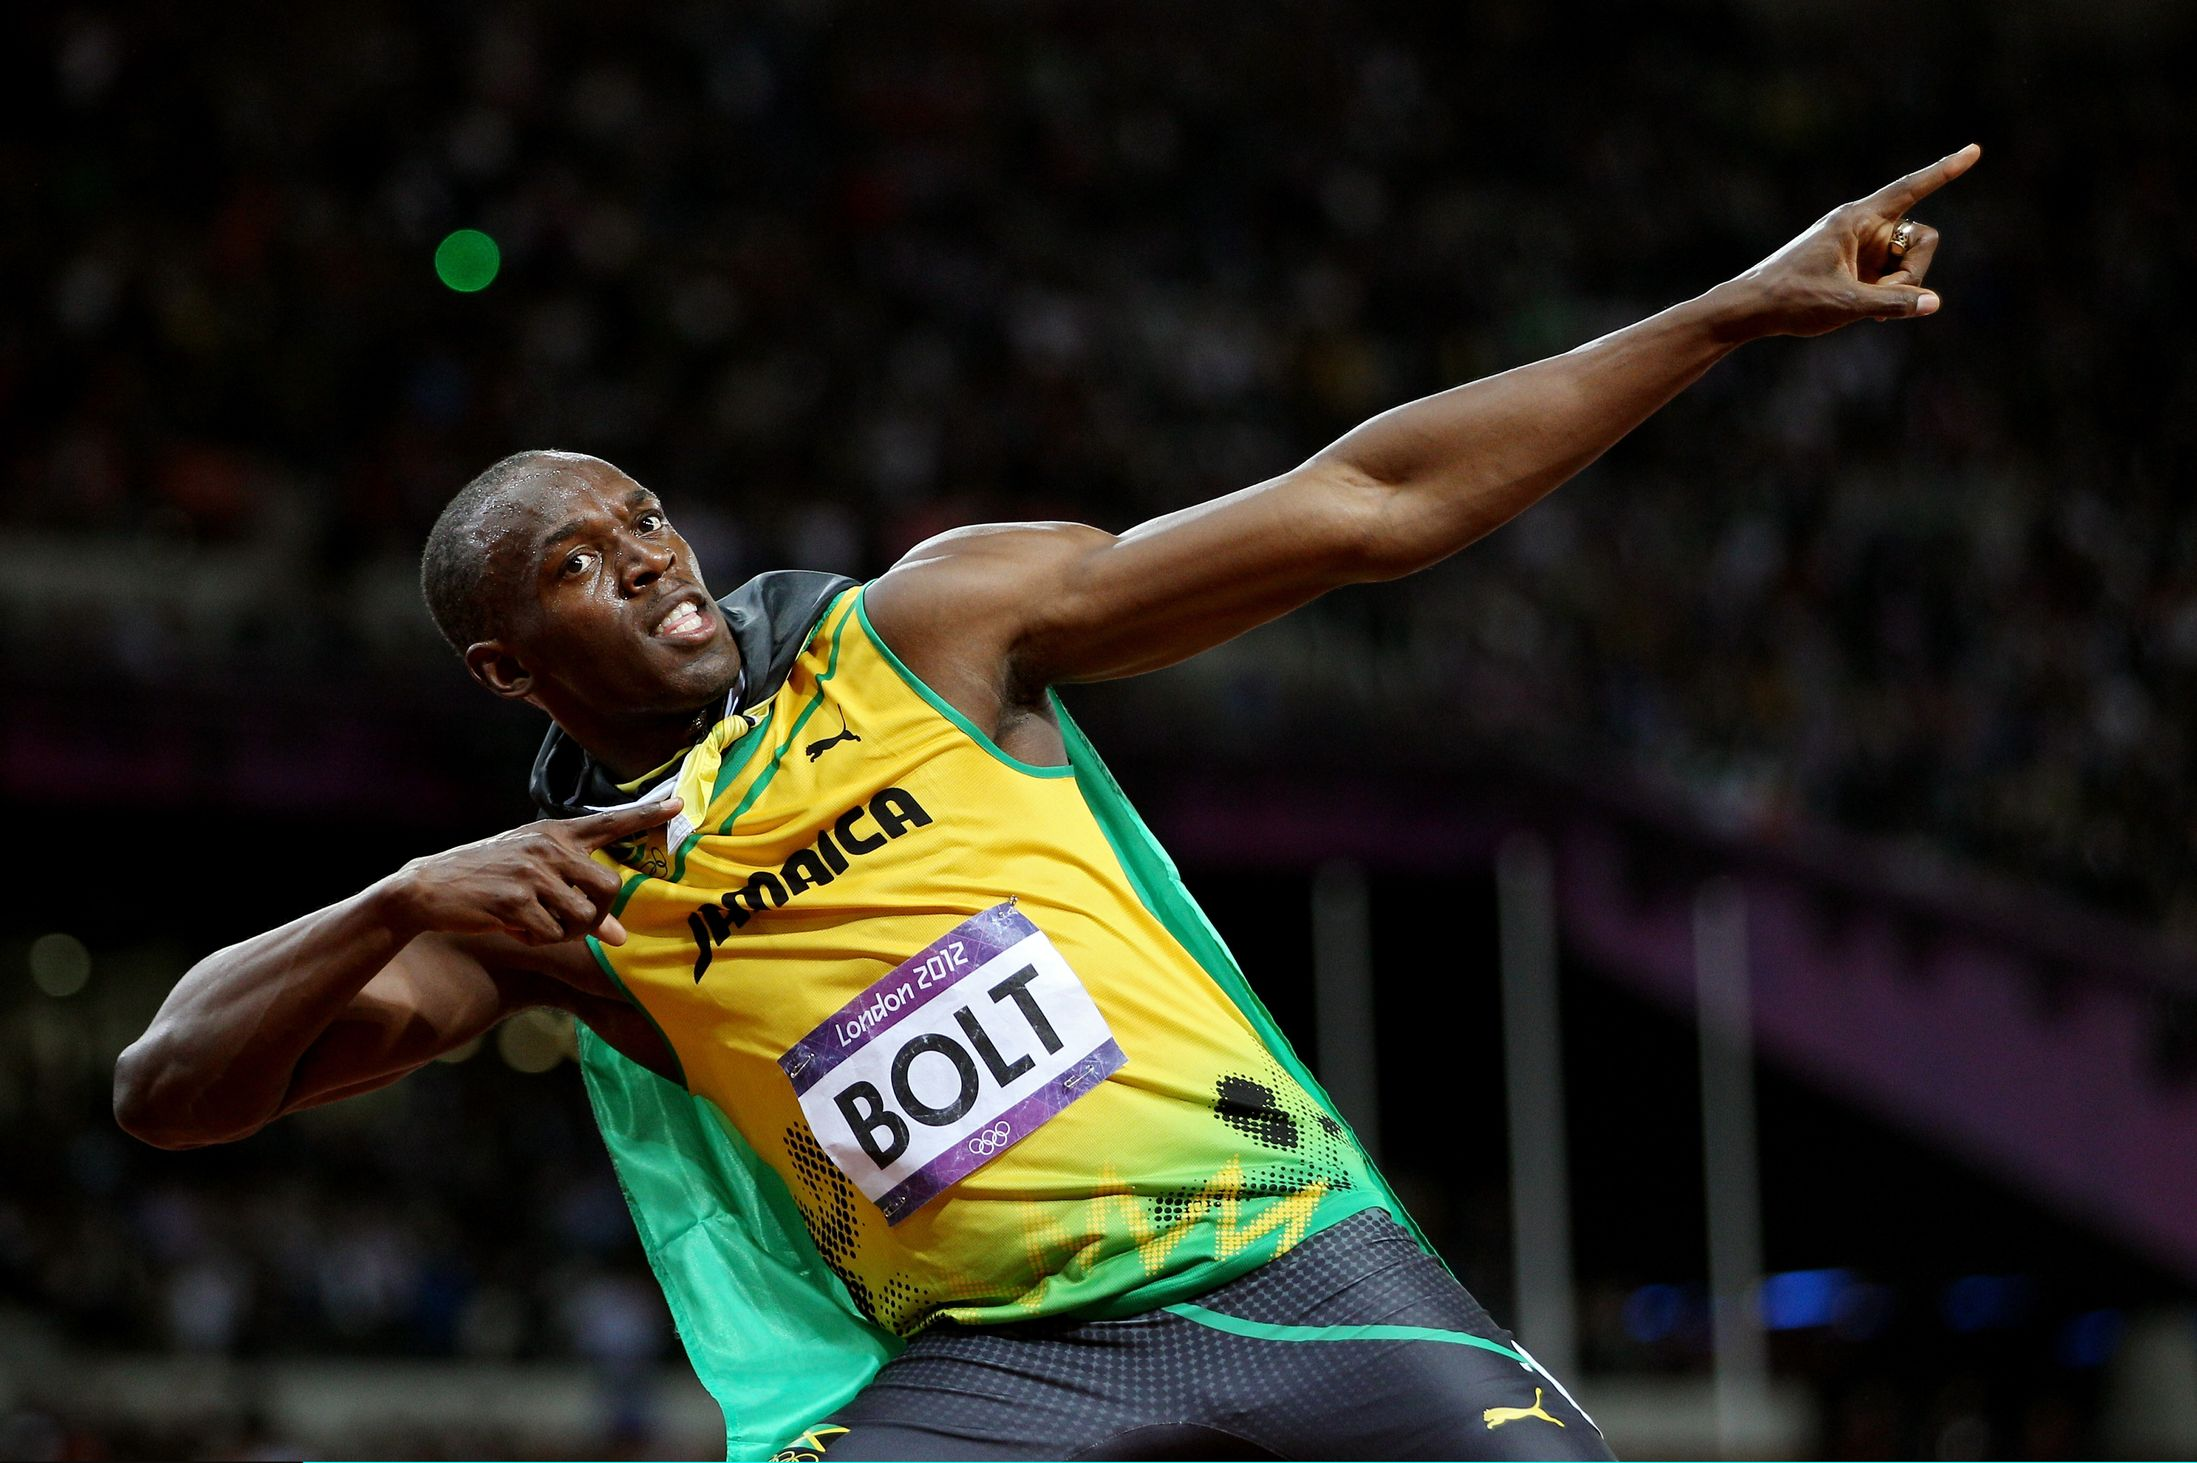 Usain-Bolt pose